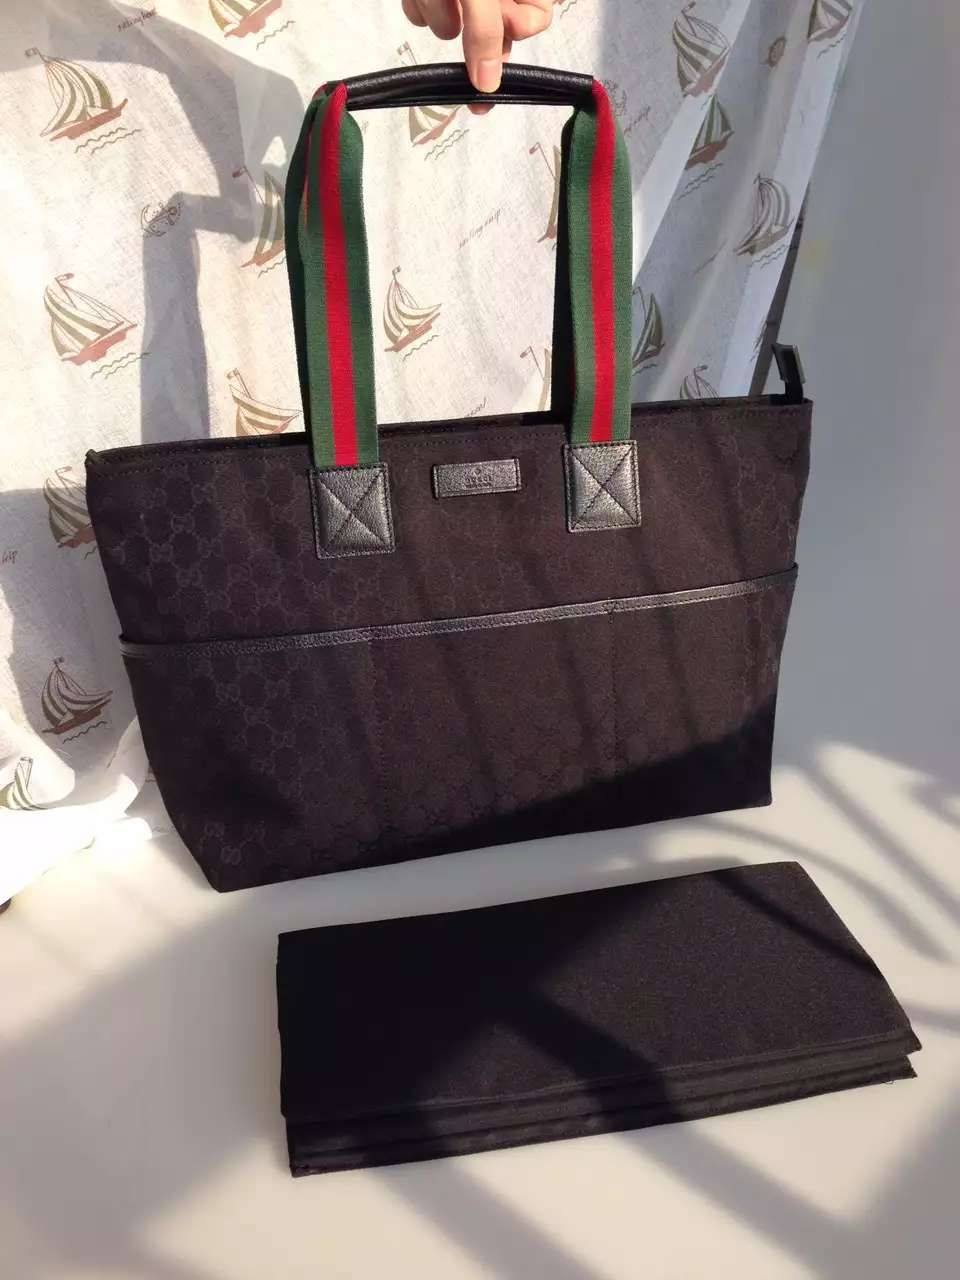 gucci Bag, ID : 48283(FORSALE:a@yybags.com), gucci shoes, gucci backpack wheels, gucci designer wallets, gucci mens backpacks, gucci brand name bags, gucci purse online, gucci laptop backpack, gucci women s wallet, gucci malaysia online store, gucci backpacks 2016, gucci rucksacks, 賲賵賯毓 睾賵鬲卮賷, gucci red briefcase, gucci business #gucciBag #gucci #gucci #store #paris